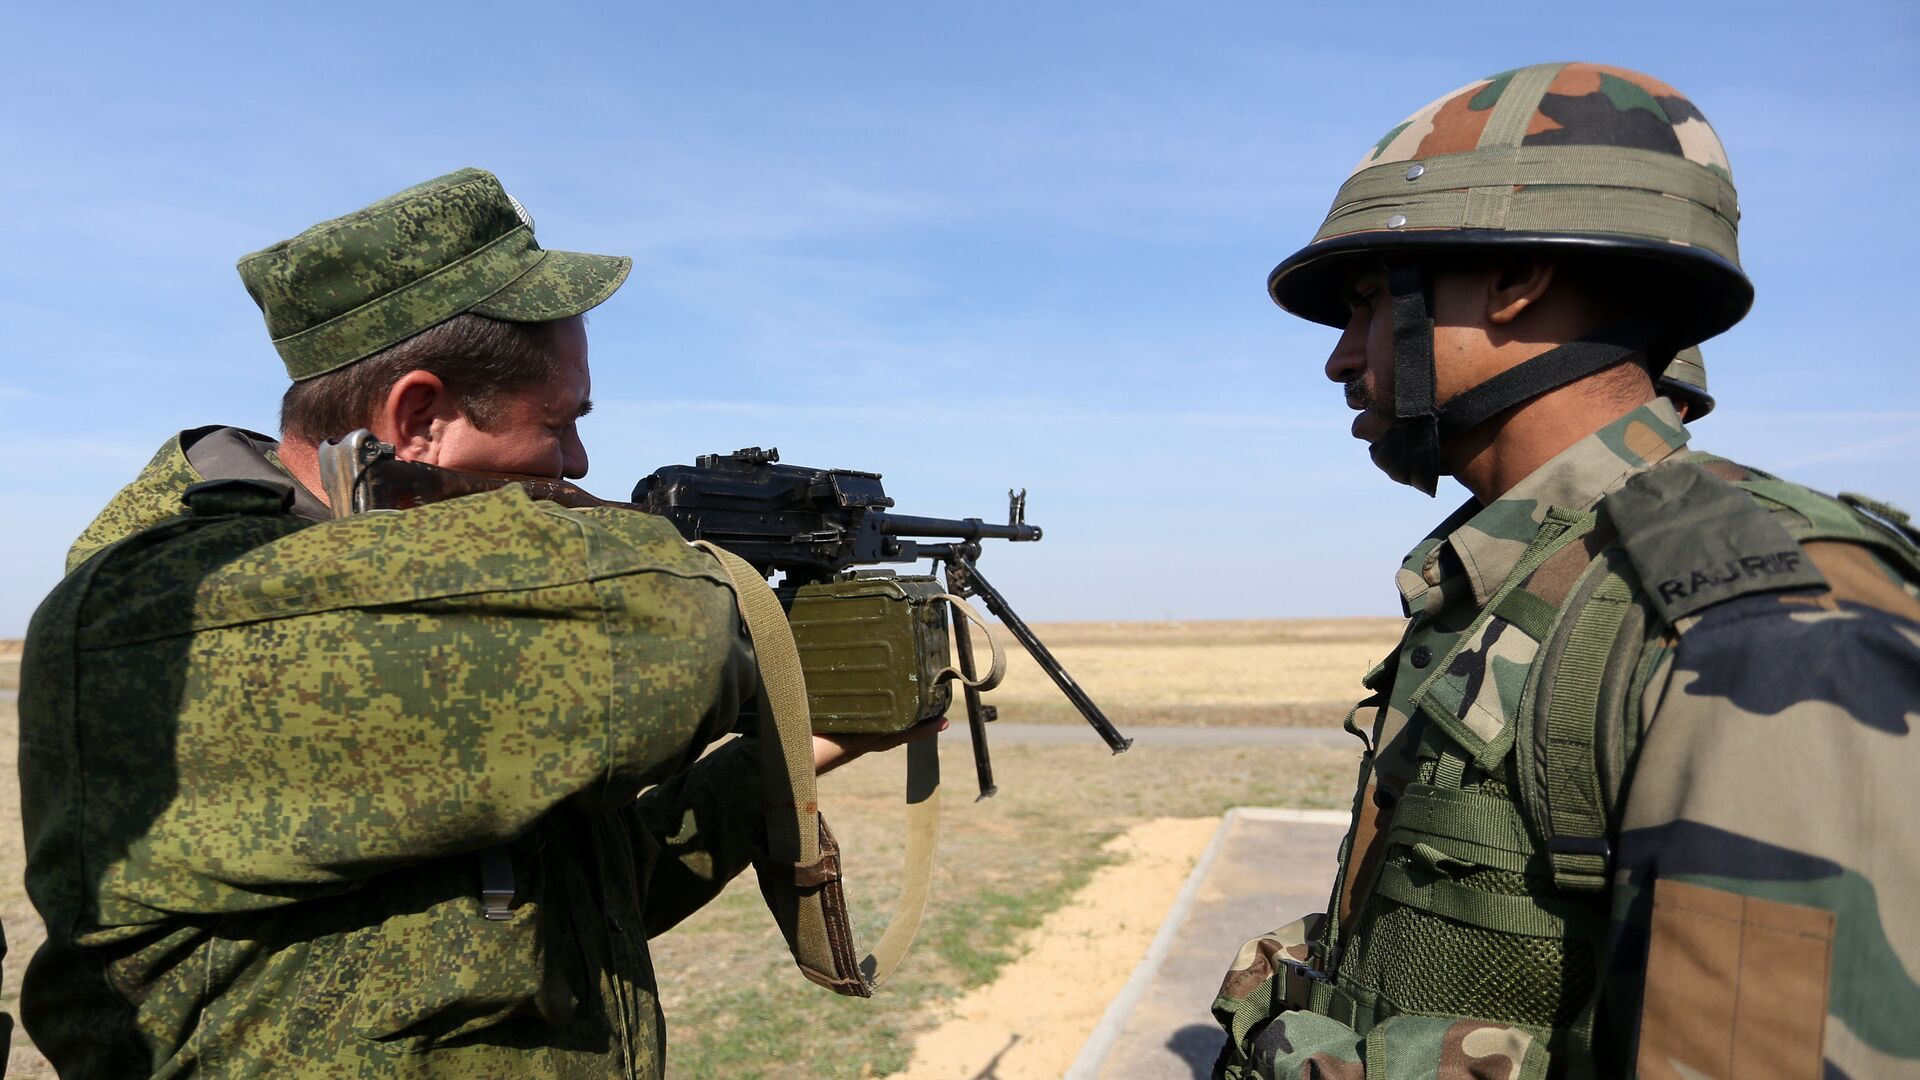 Russian and Indian troops held the first firing exercises during the joint Indra-2015 drills in northern India's Mahajan firing range - Sputnik International, 1920, 23.09.2021